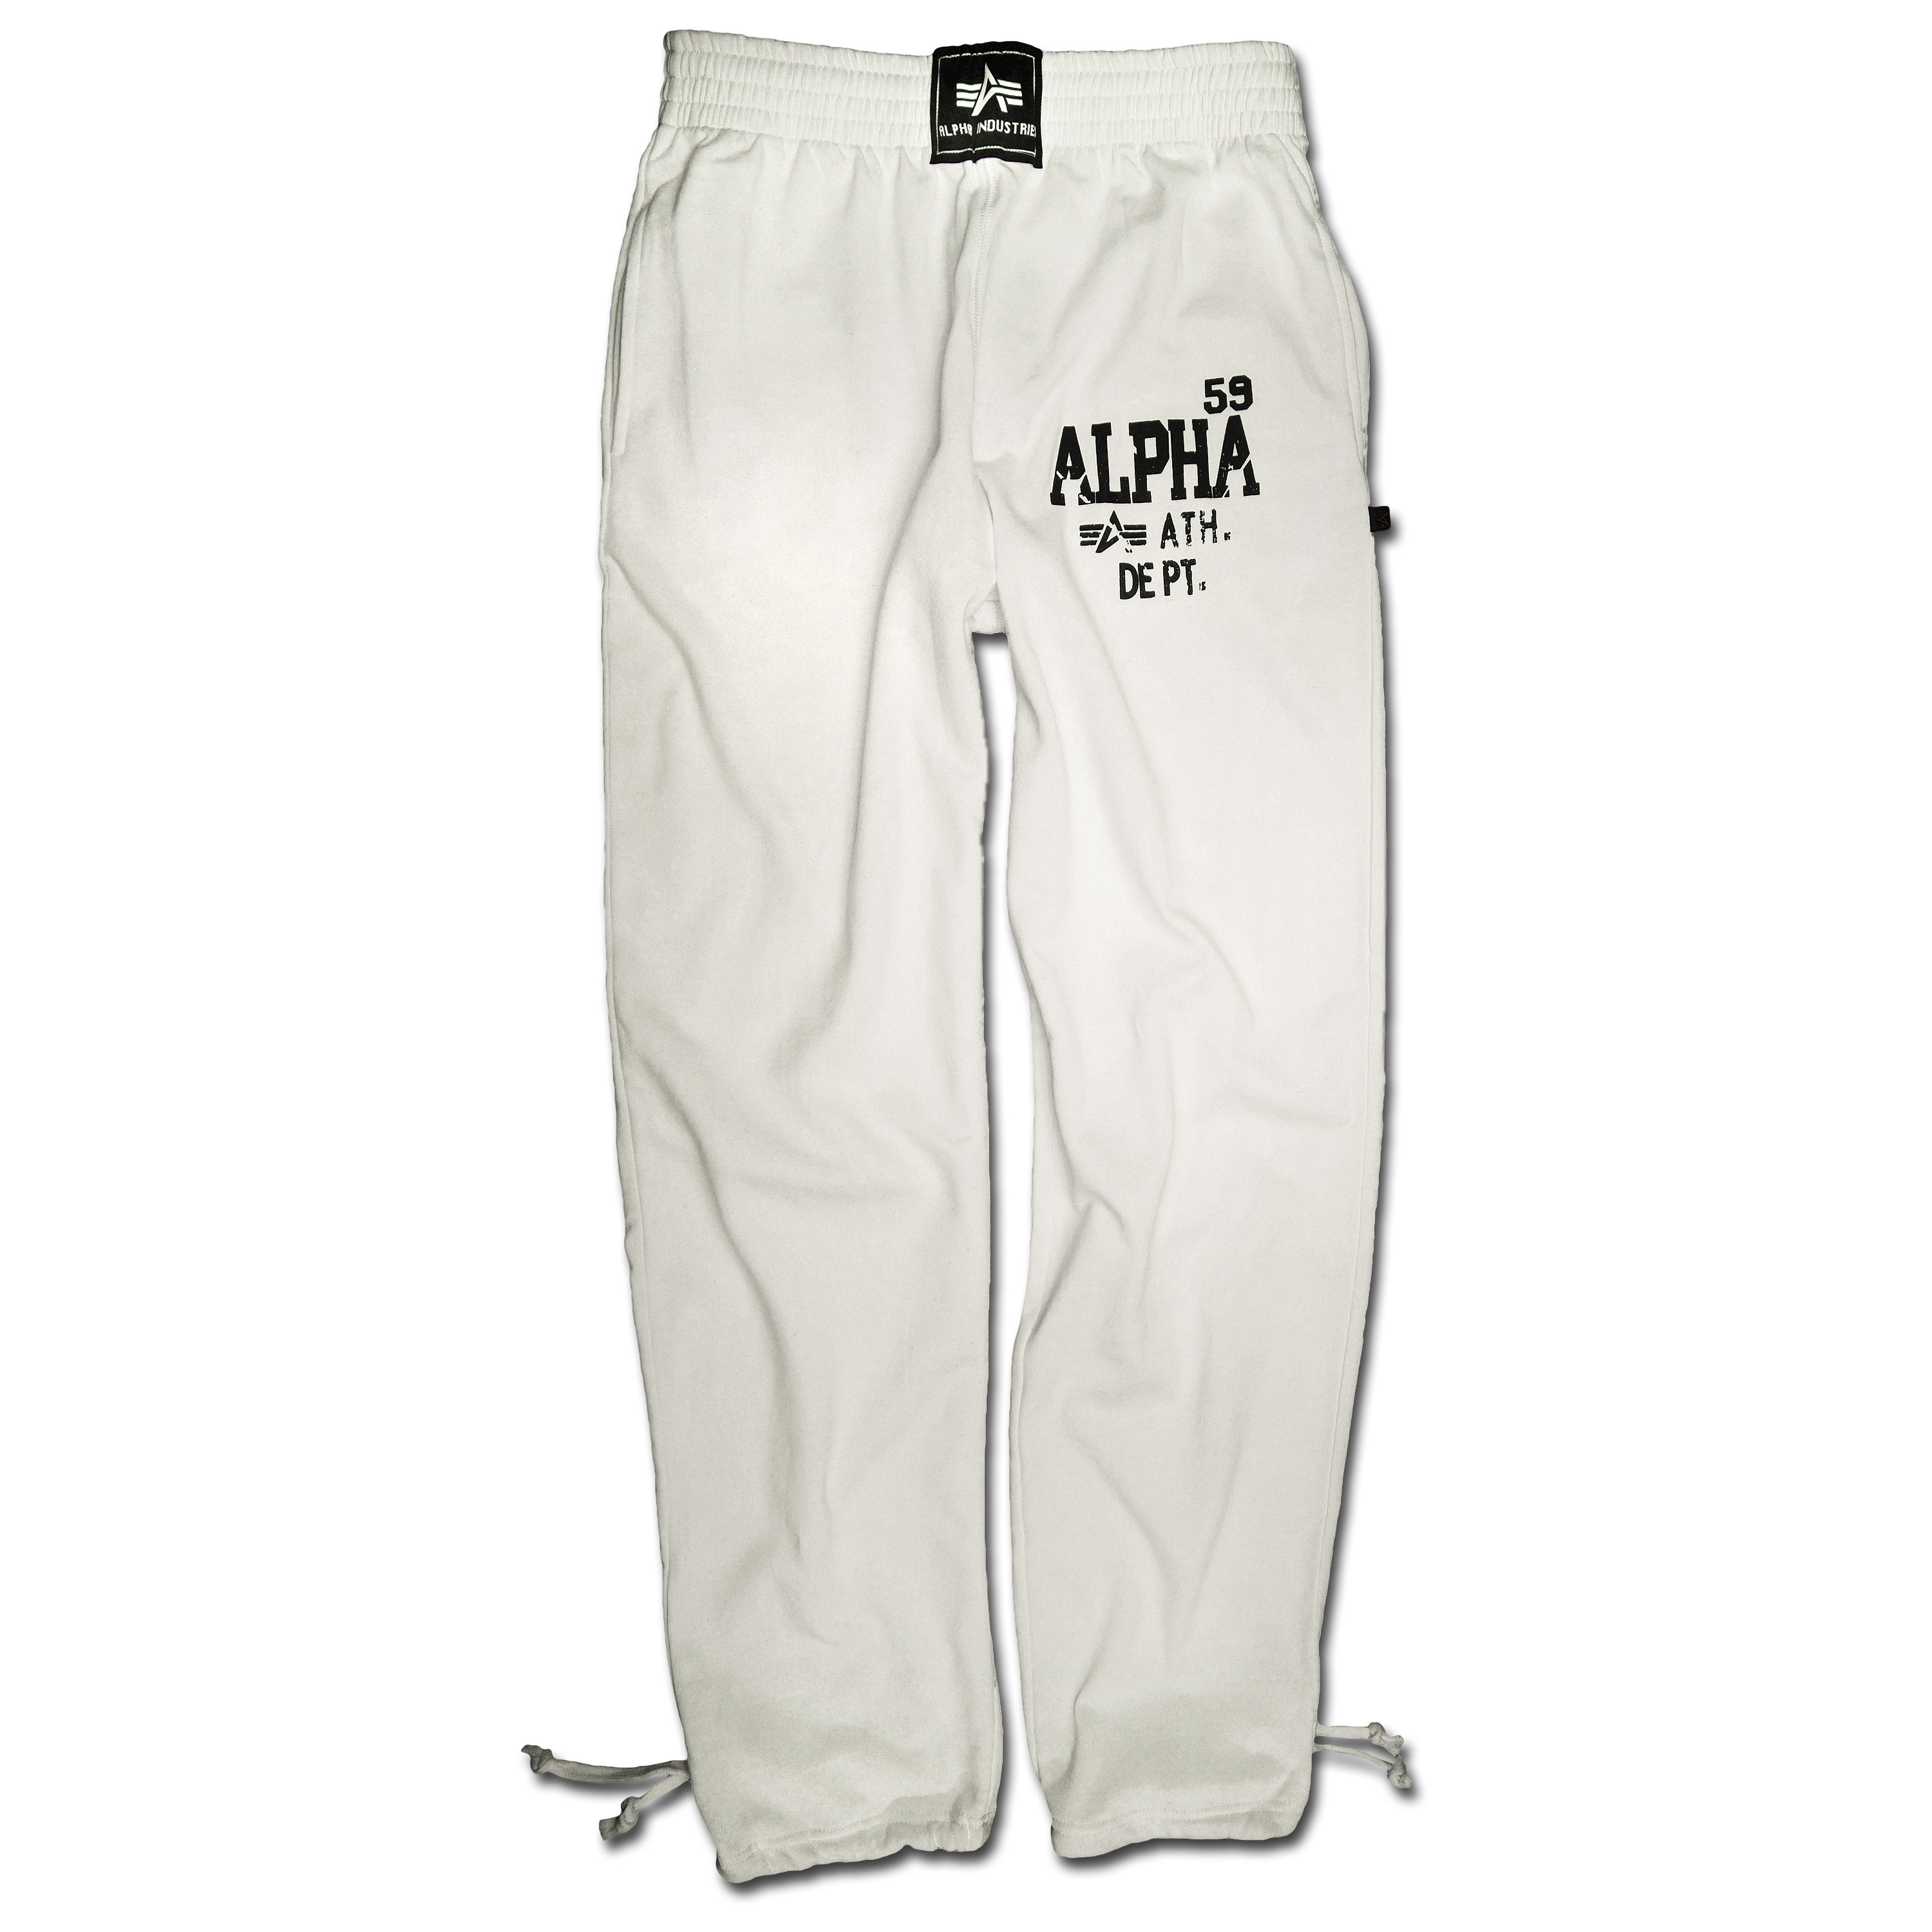 Sweatpants Alpha Athletic Department weiss